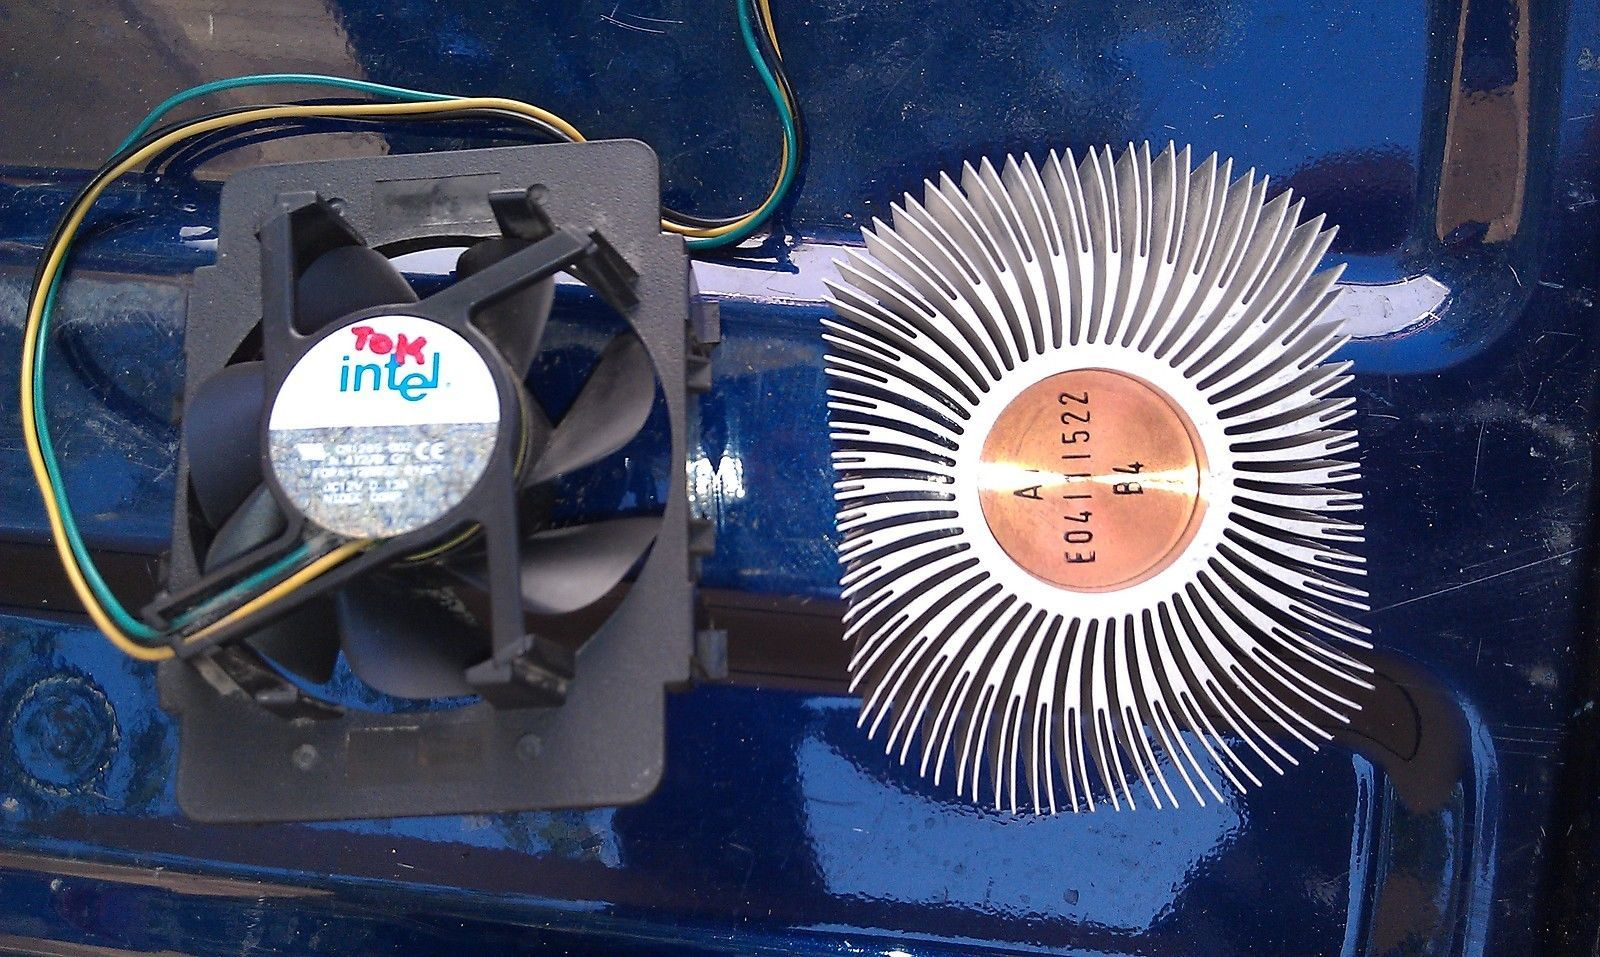 Primary image for 8E87 HEAT SINK (COPPER ALUMINUM HYBRID, 330G) WITH FAN (12VDC 130MA 70MM), VGC